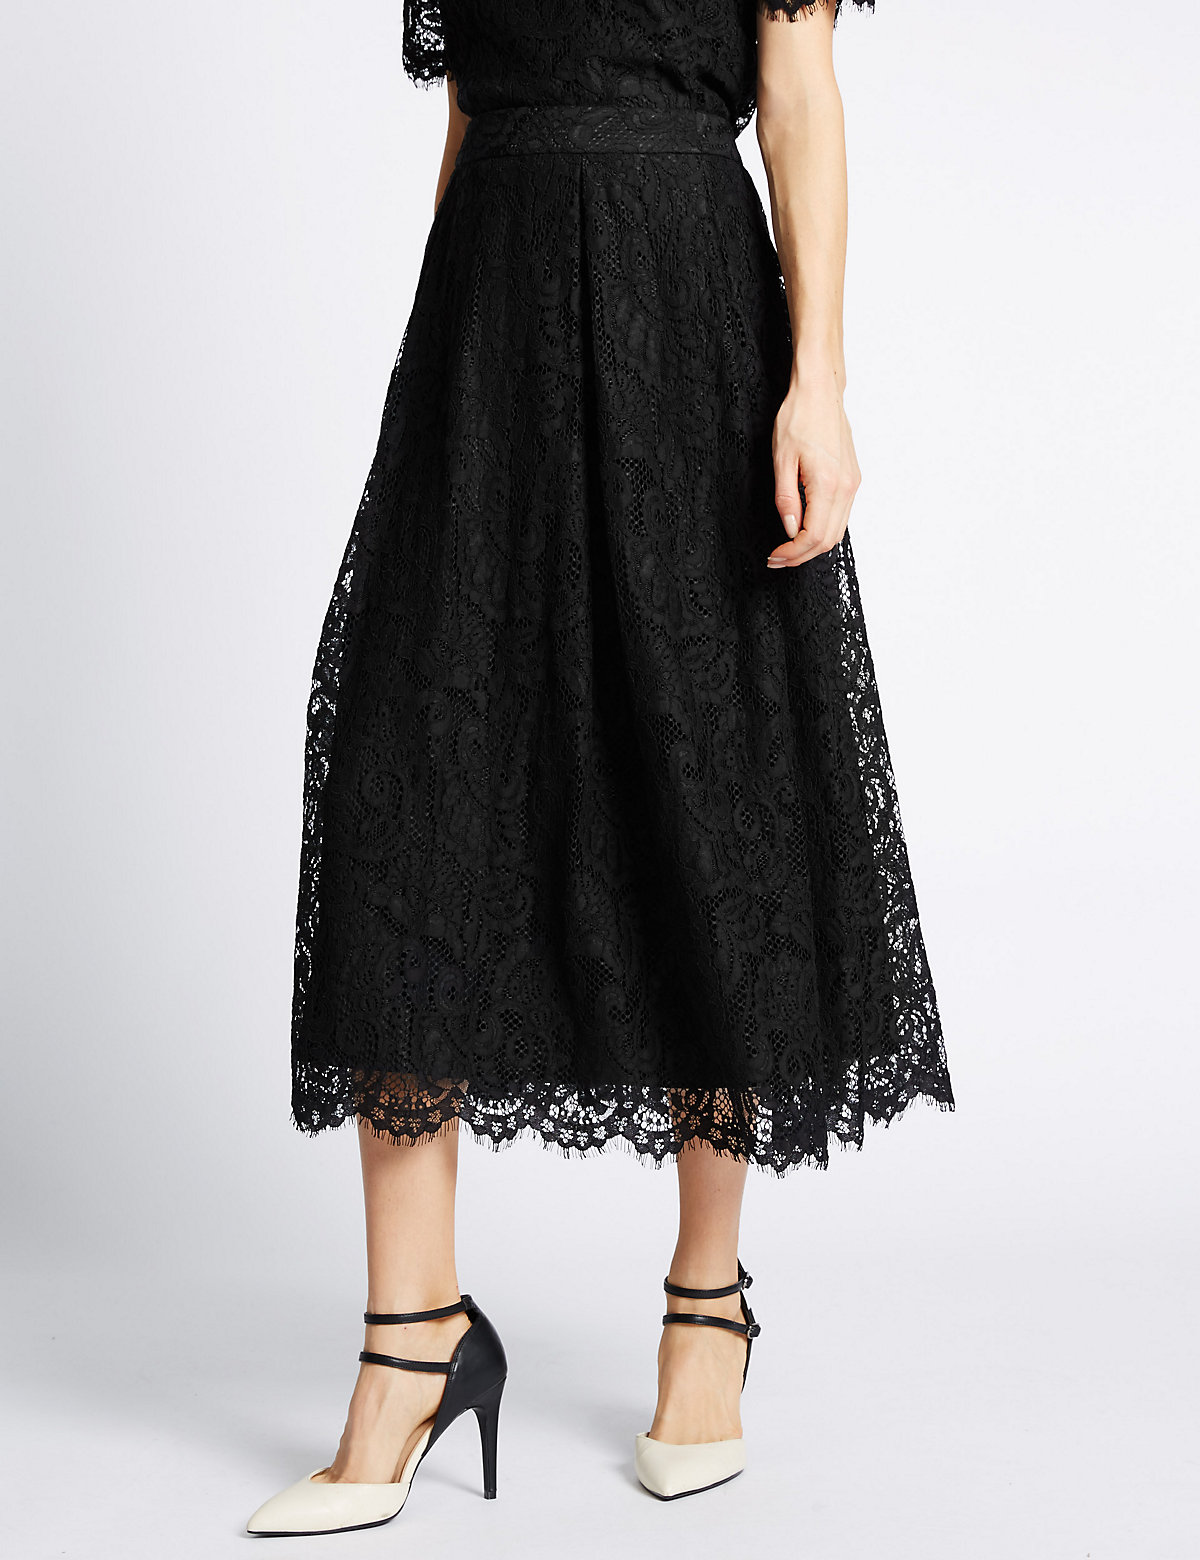 MS Collection Cotton Blend Lace A Line Skirt Marks and Spencer P22497914